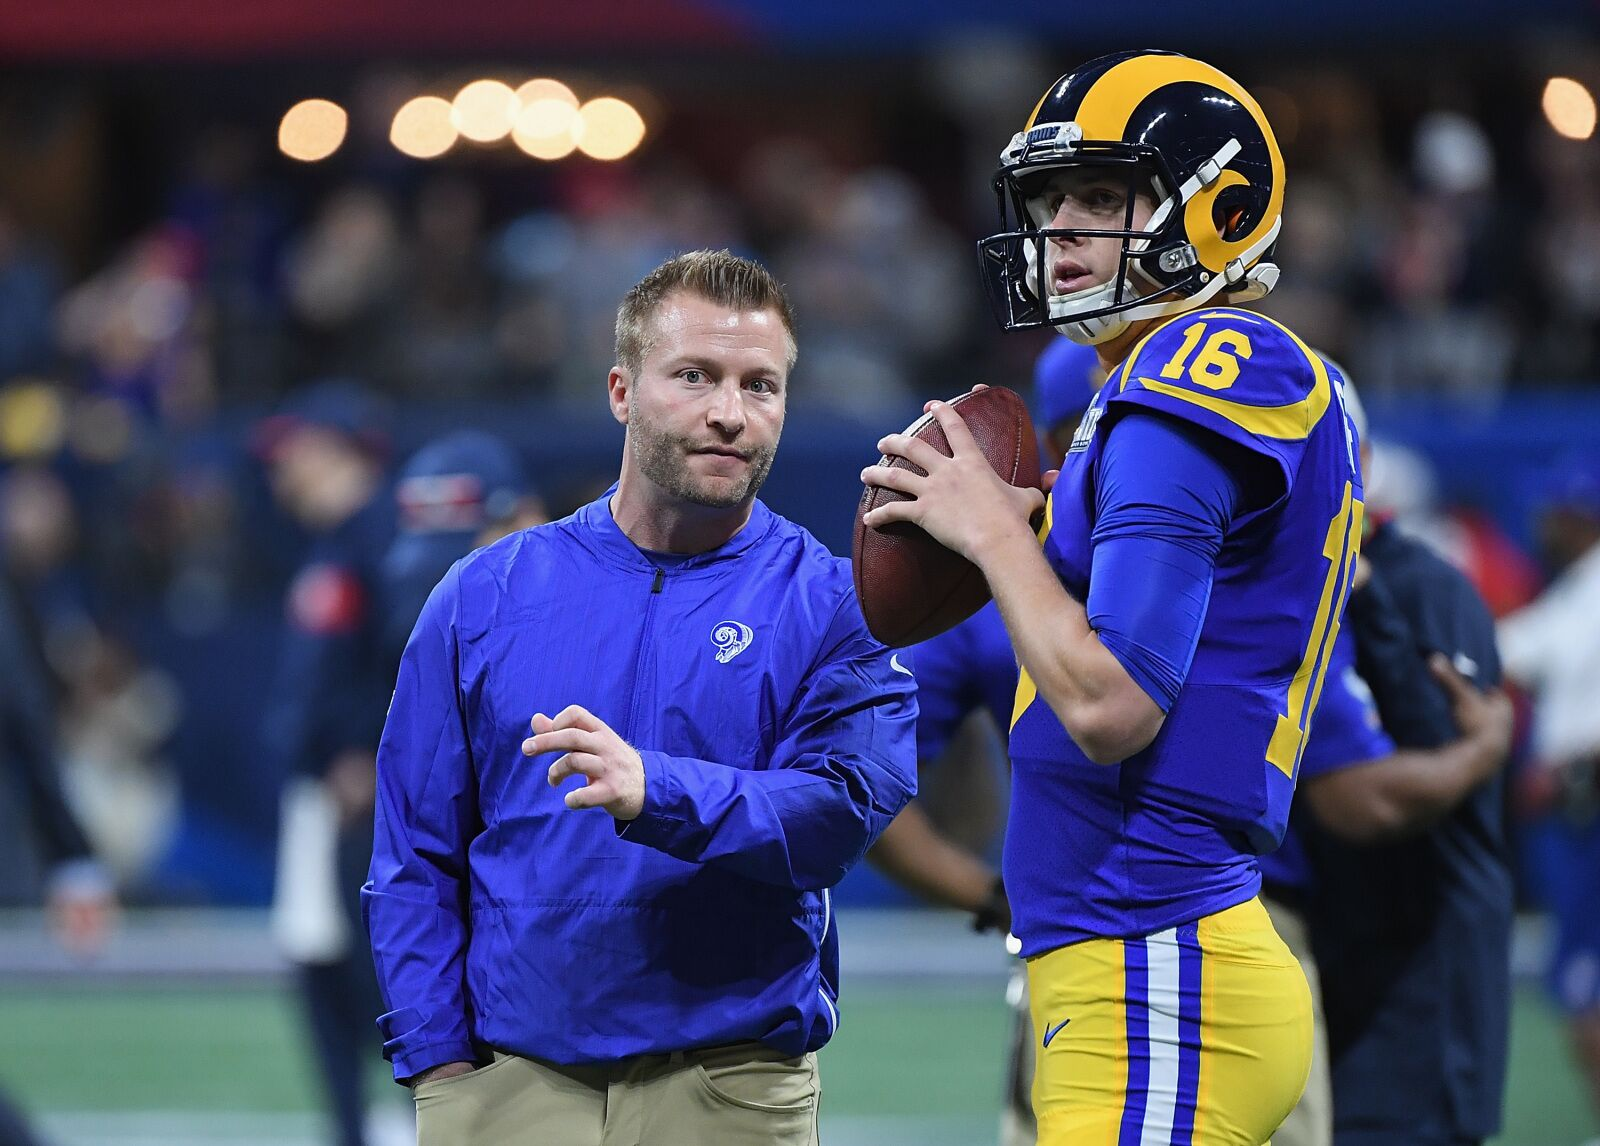 Rams once again face new level of pressure as contender heading into 2019